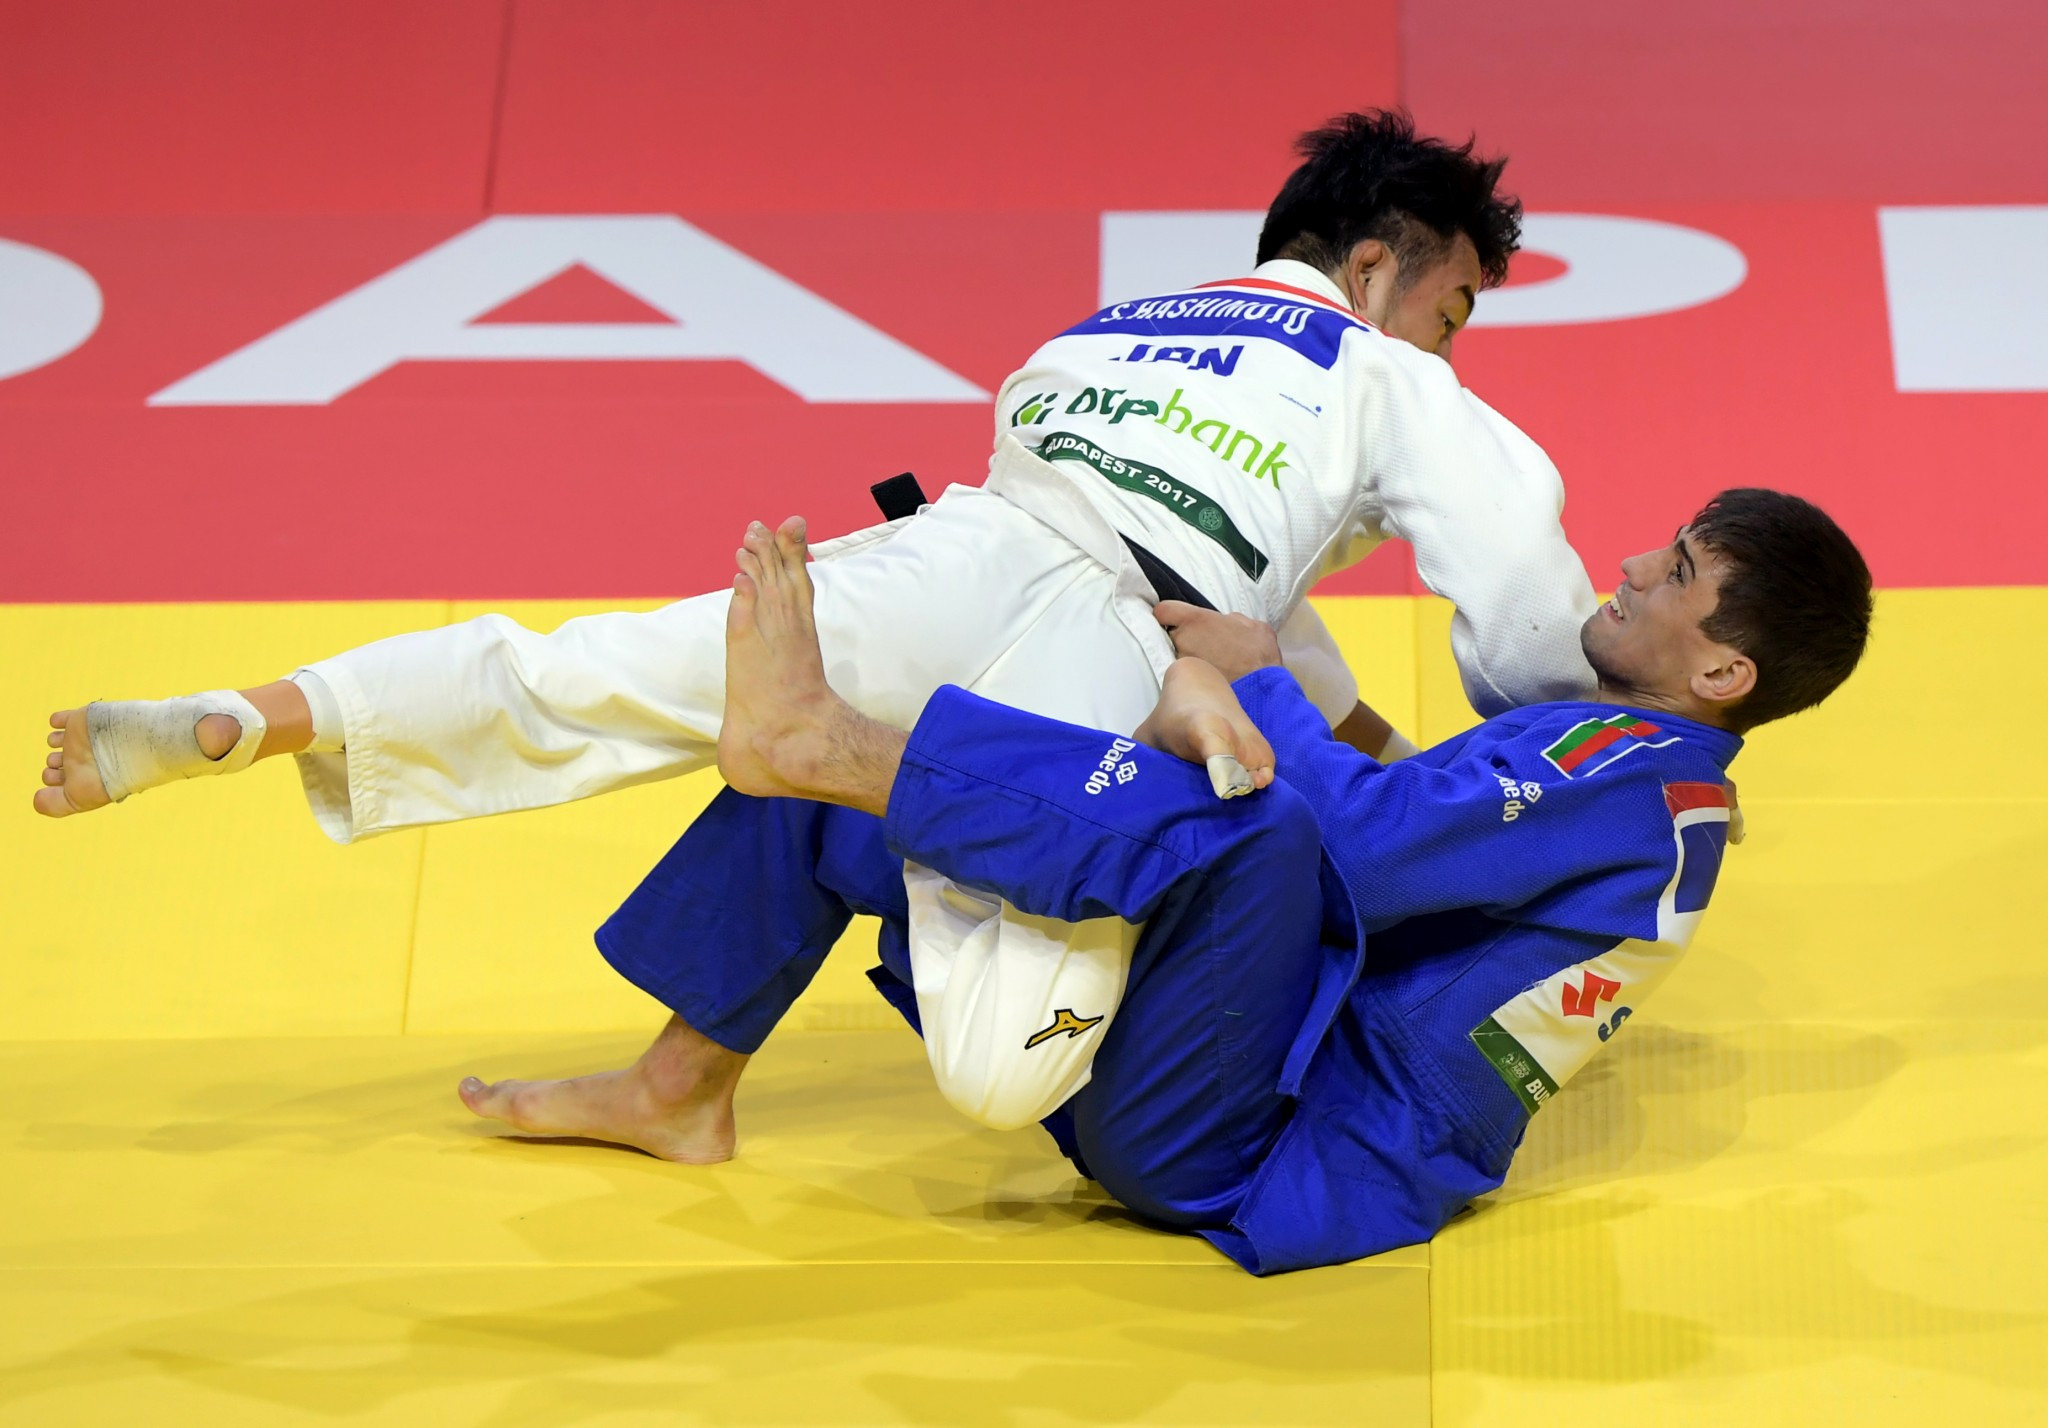 Soichi Hashimoto won Japan's fifth gold medal of the Championships with victory at under 73kg ©Getty Images